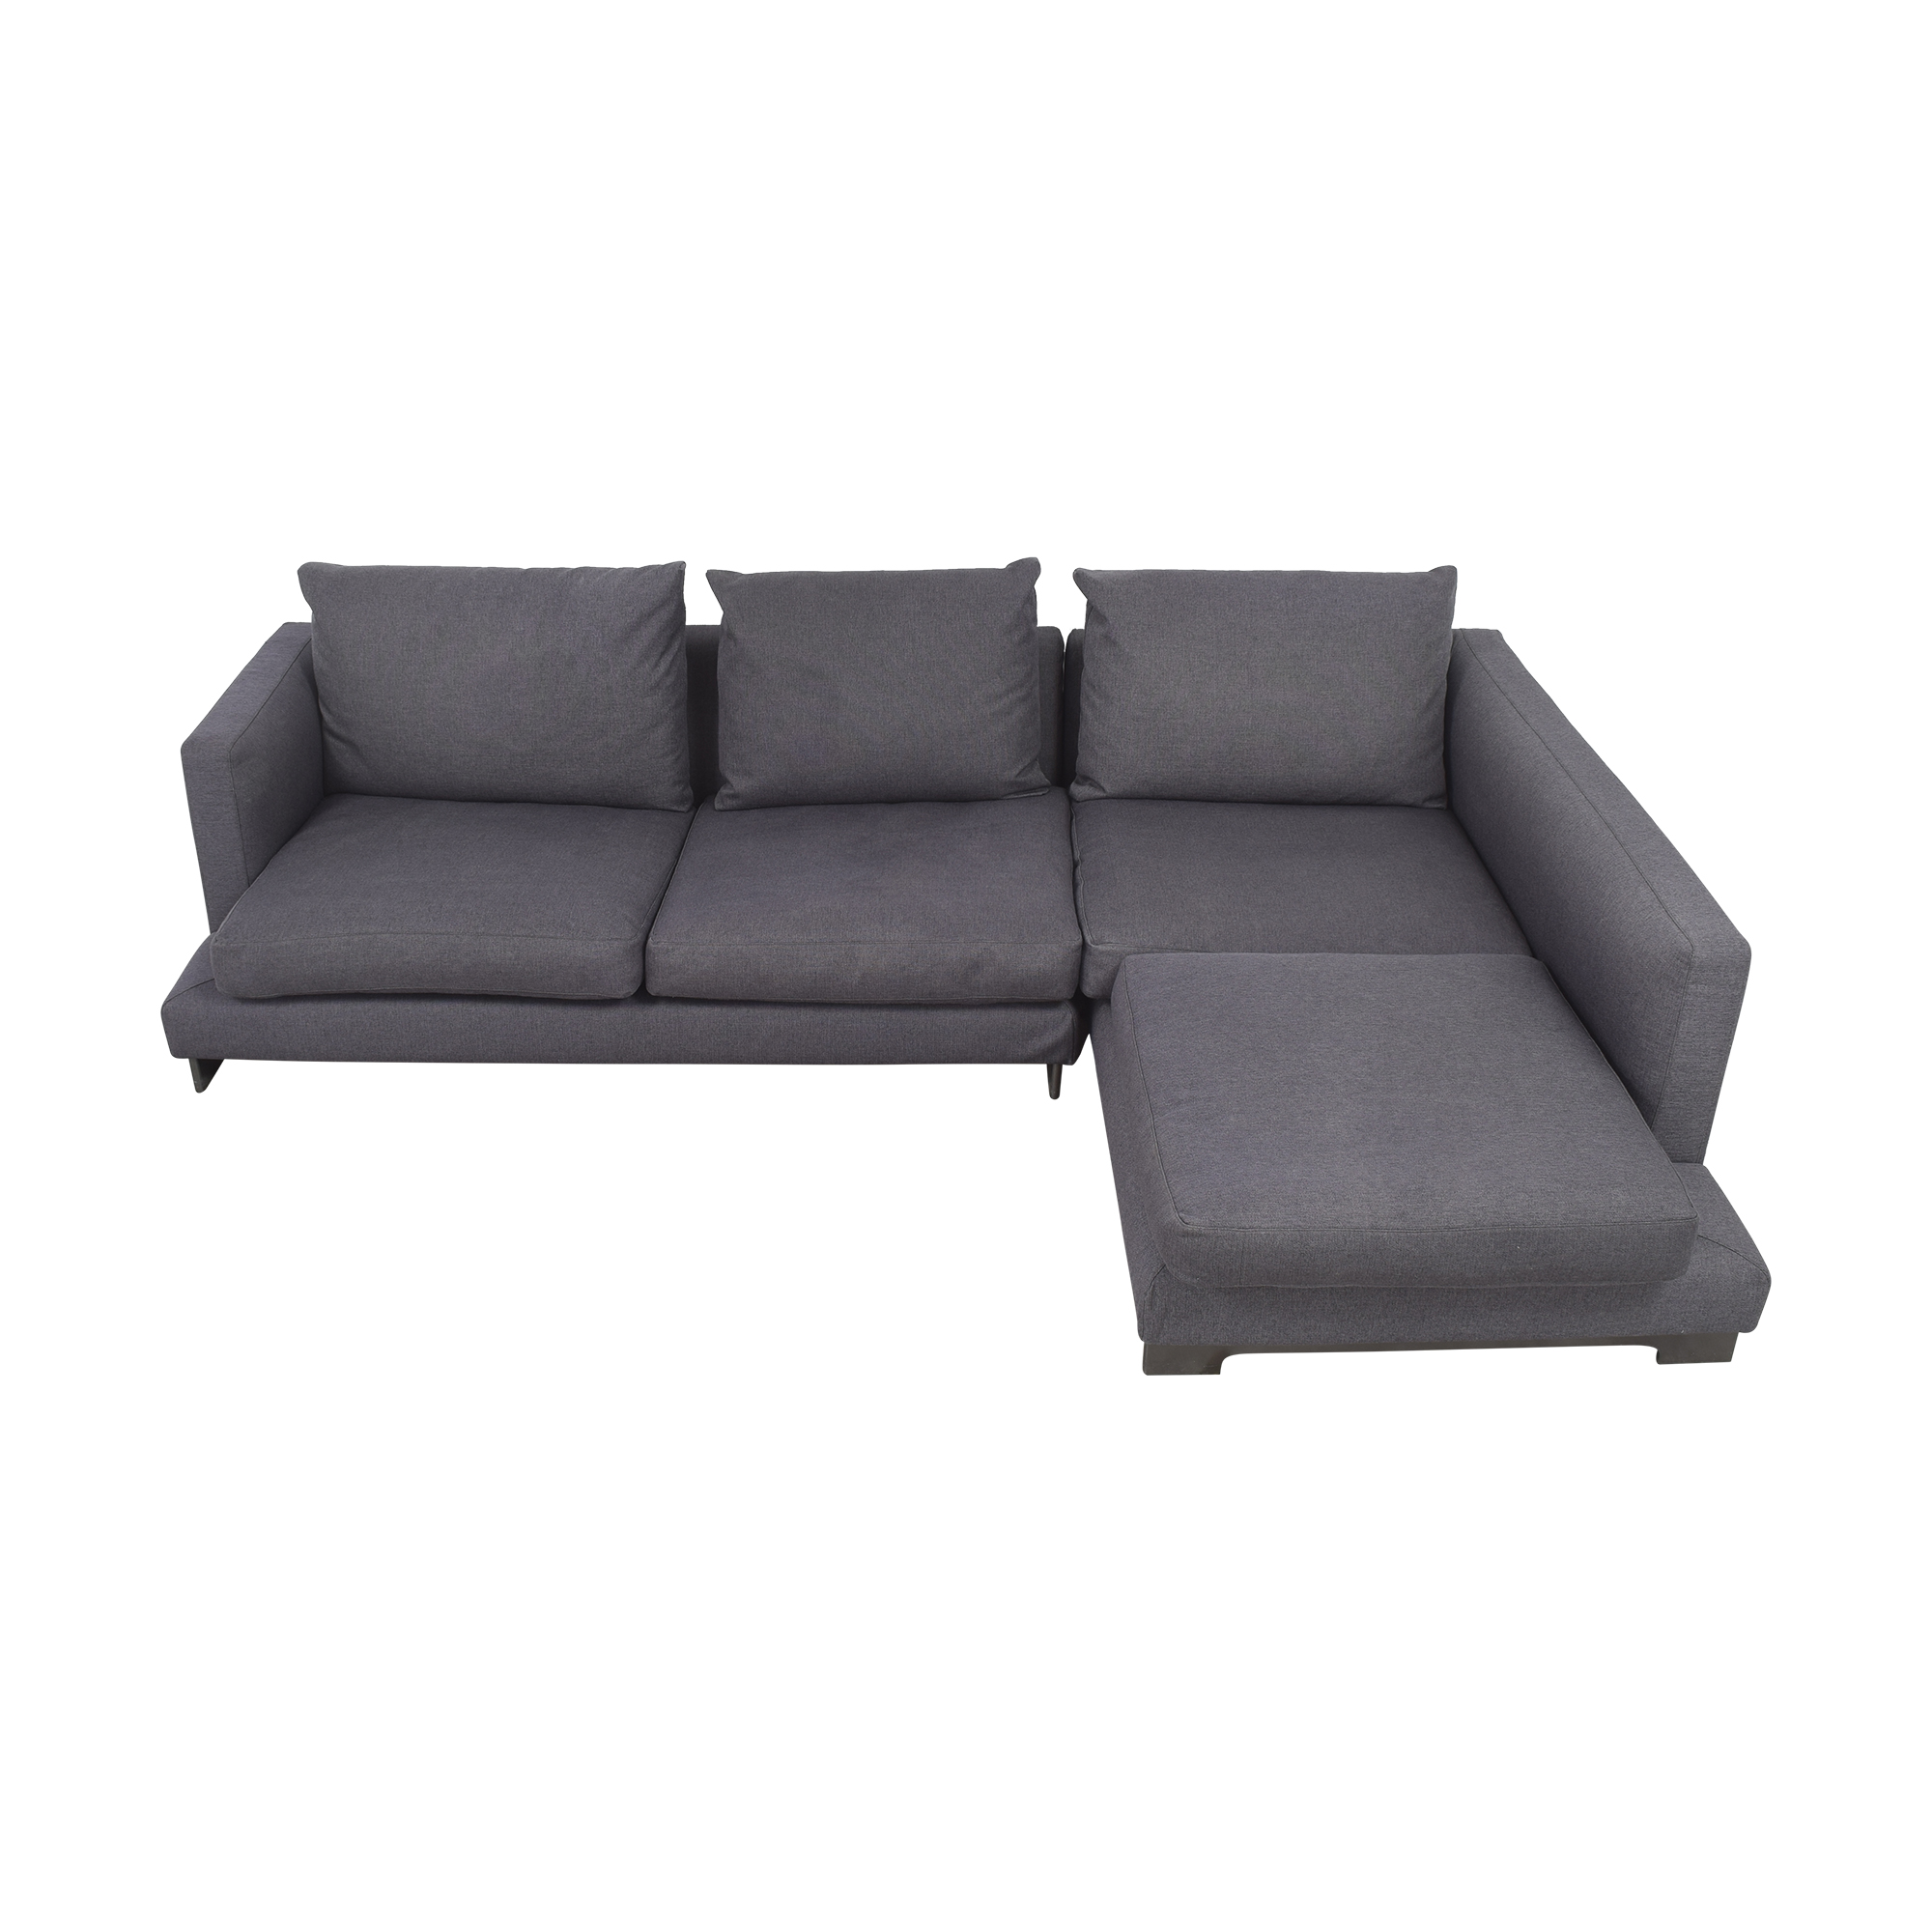 Camerich Camerich Lazy Time Chaise Sectional Sofa coupon